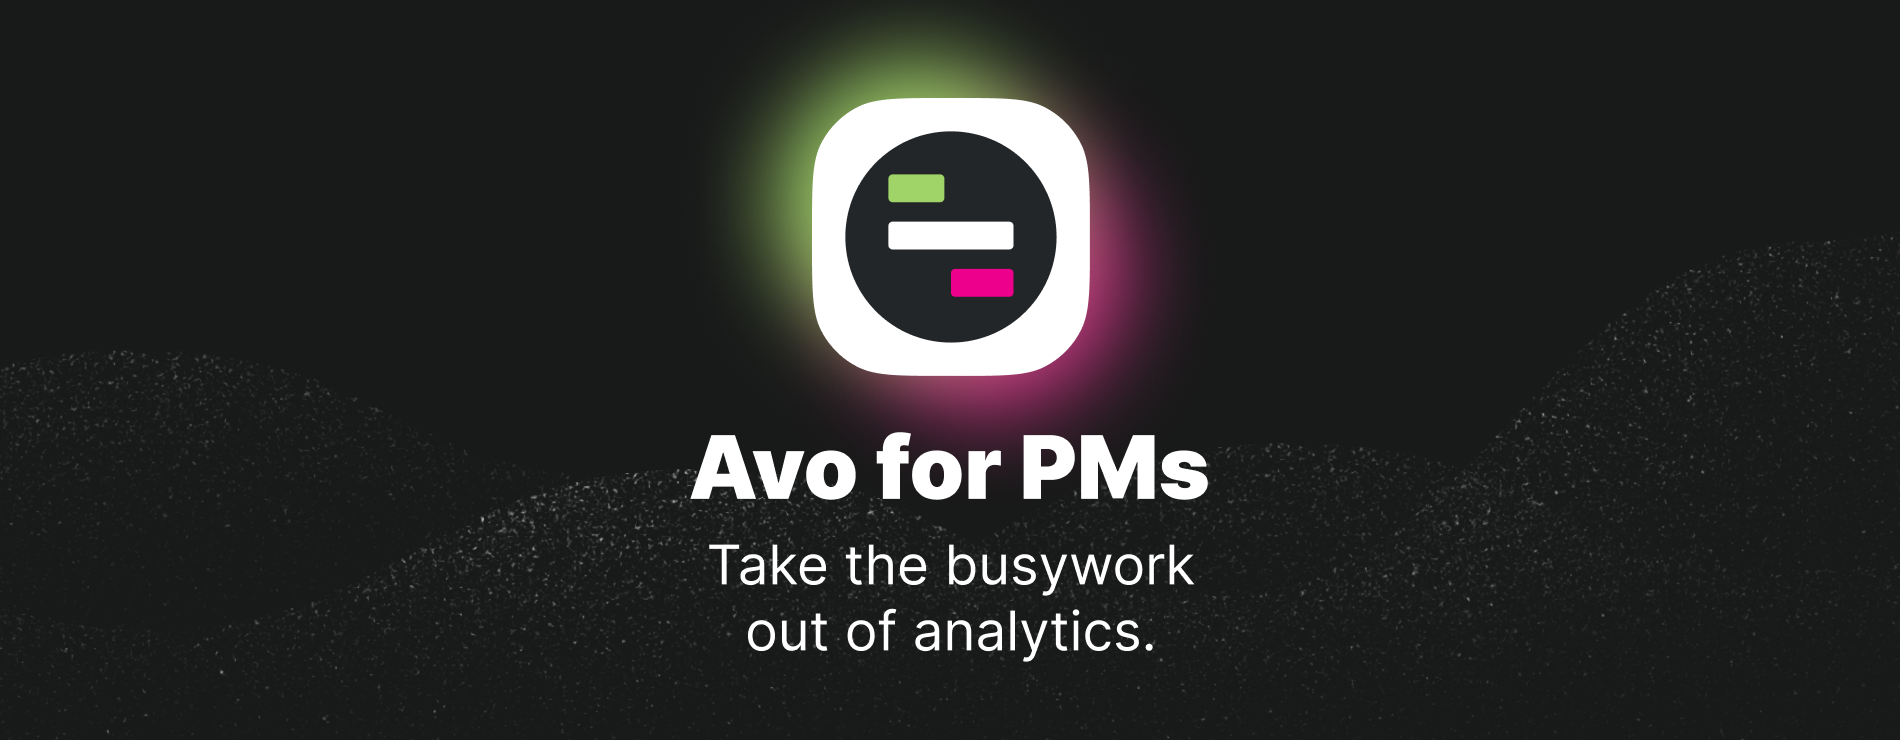 Launching Now: Error Proof Your Analytics with Avo for PMs